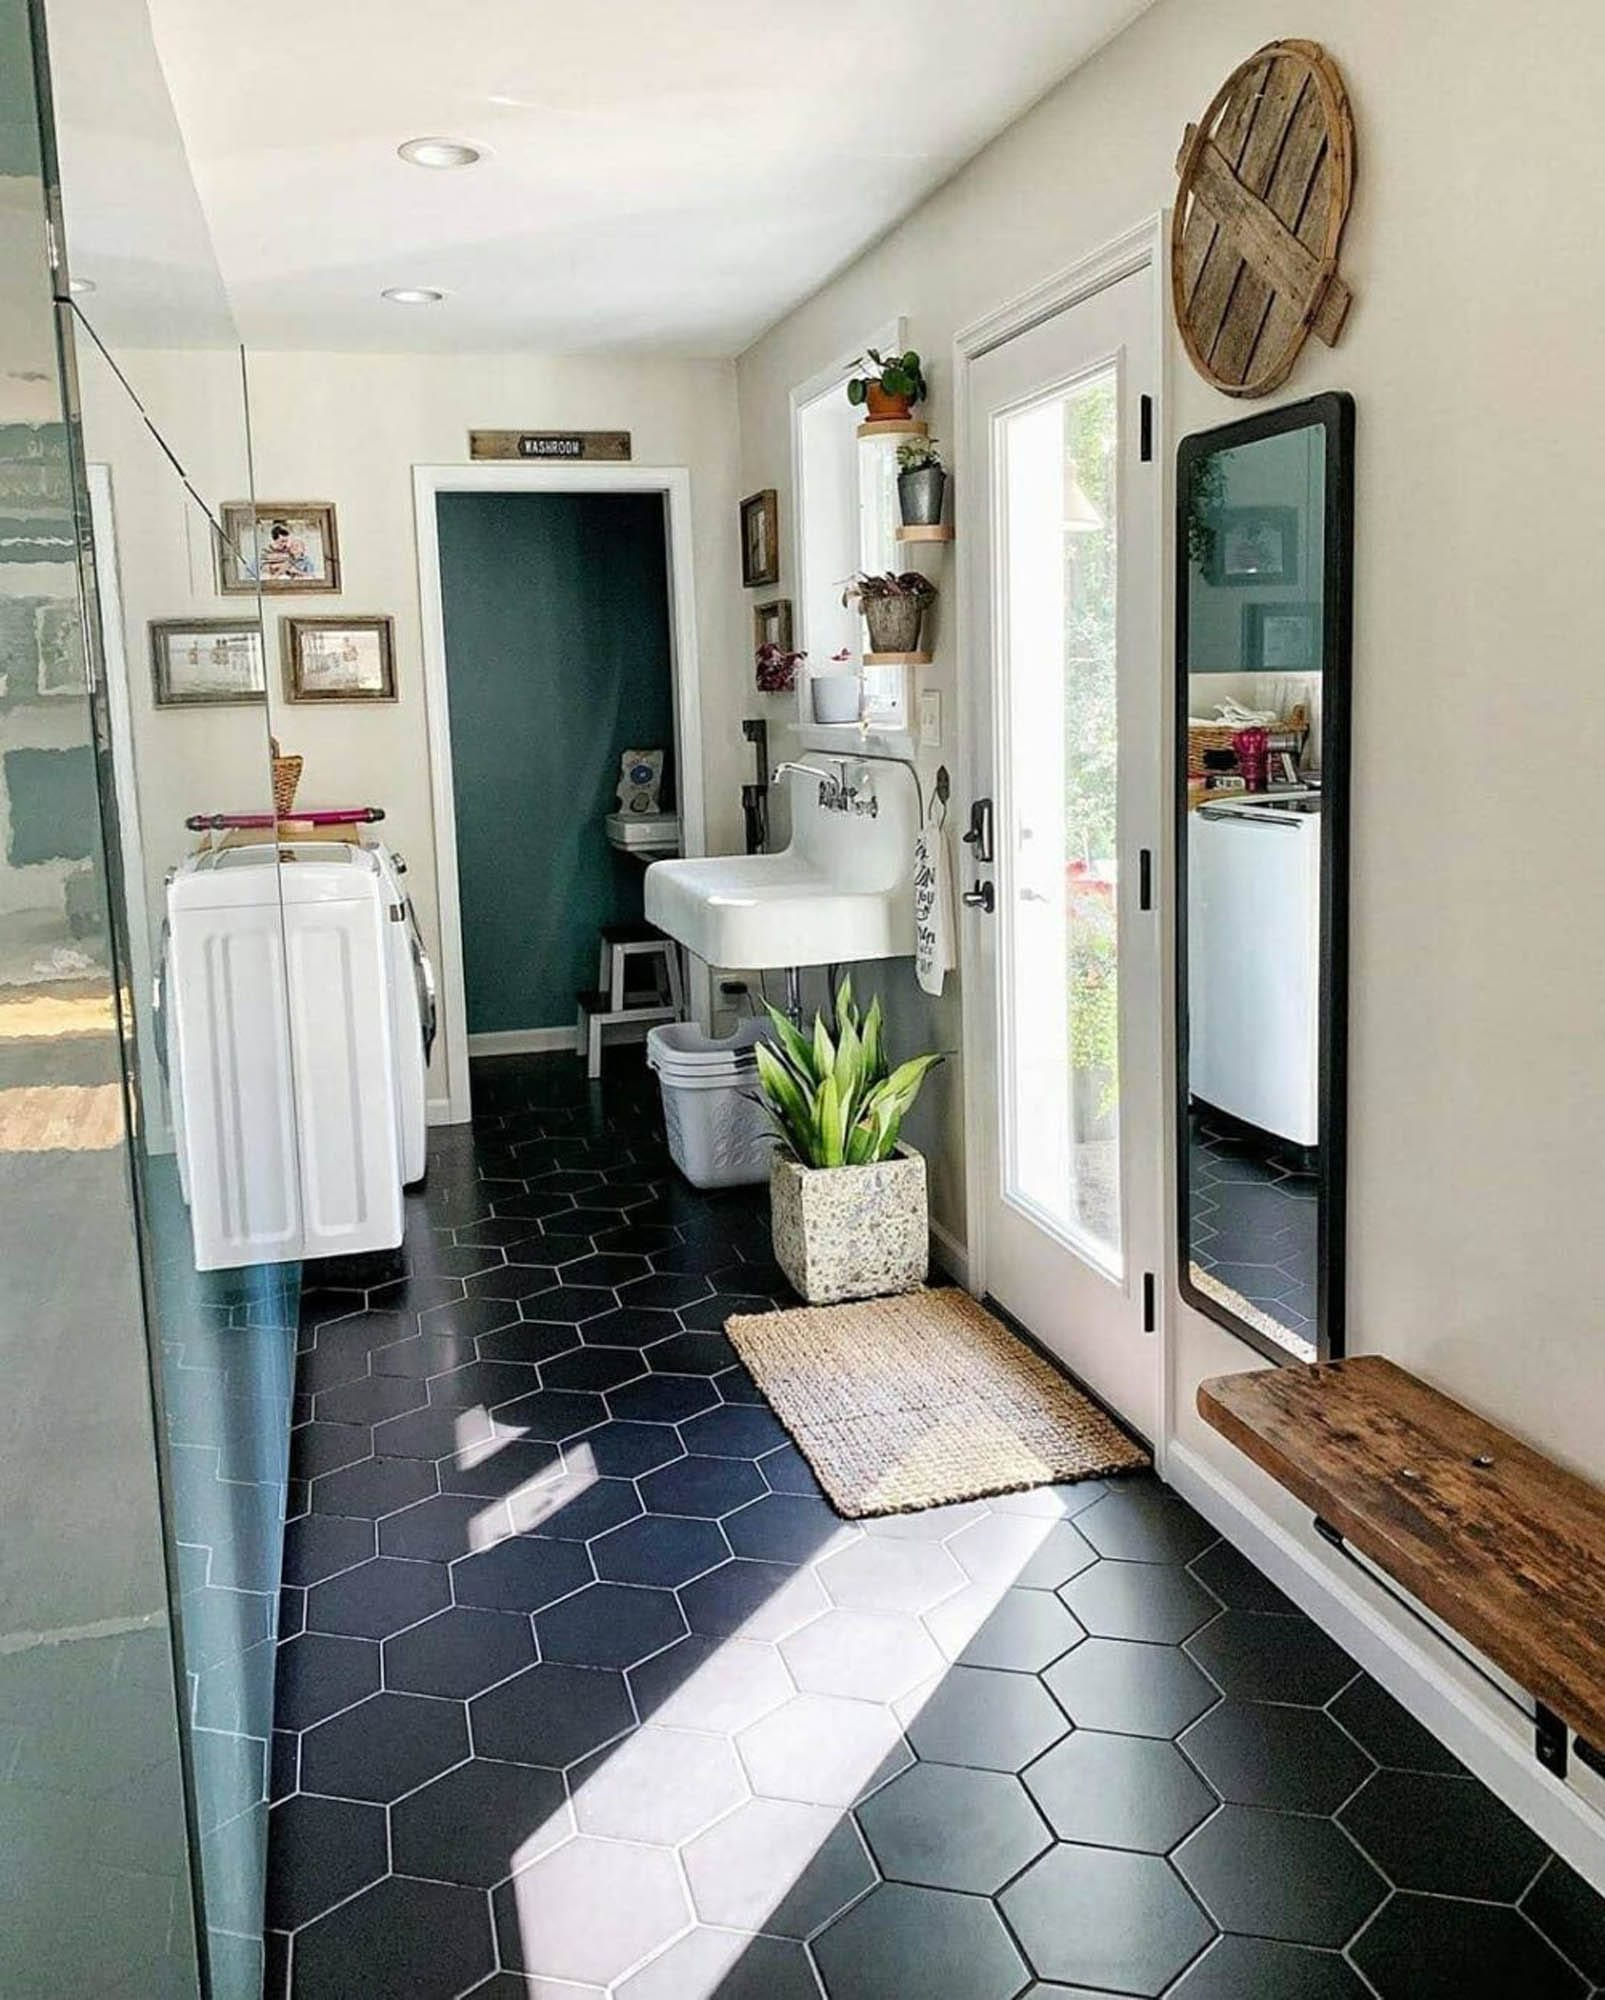 Laundry room with vintage accessories